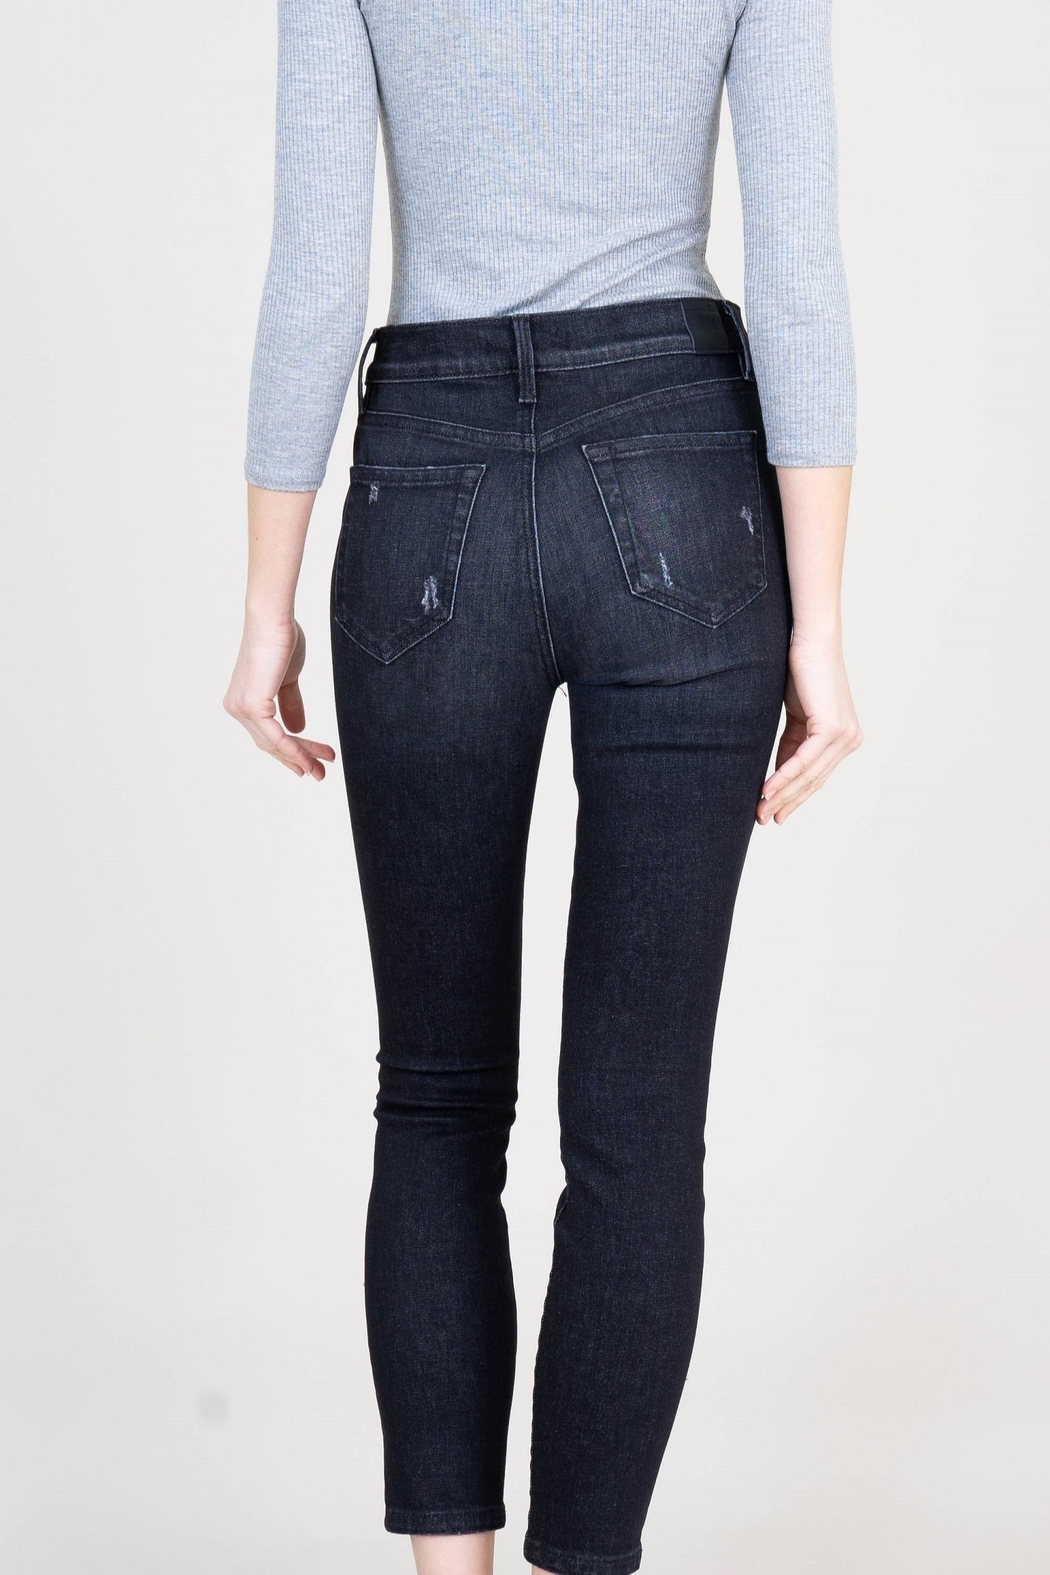 Level 99 Heidi Exposed Button Fly Jeans - Front Cropped Image